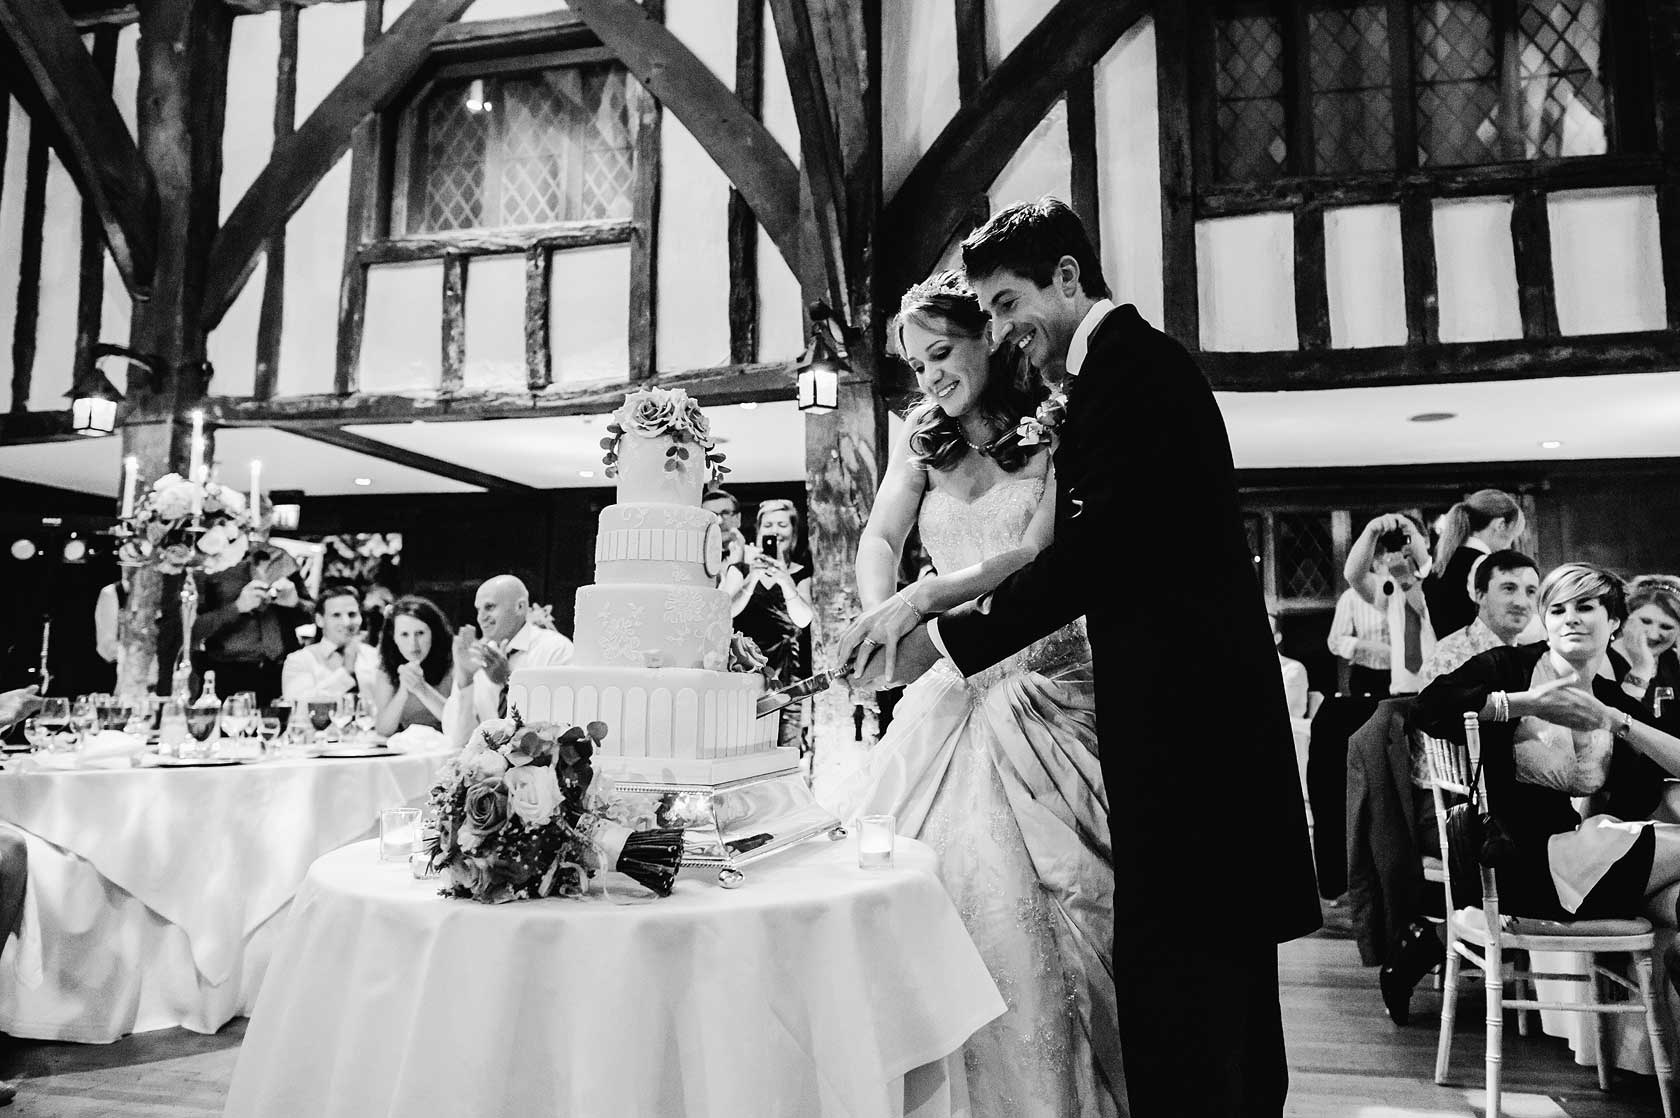 Reportage Wedding Photography at Great Fosters